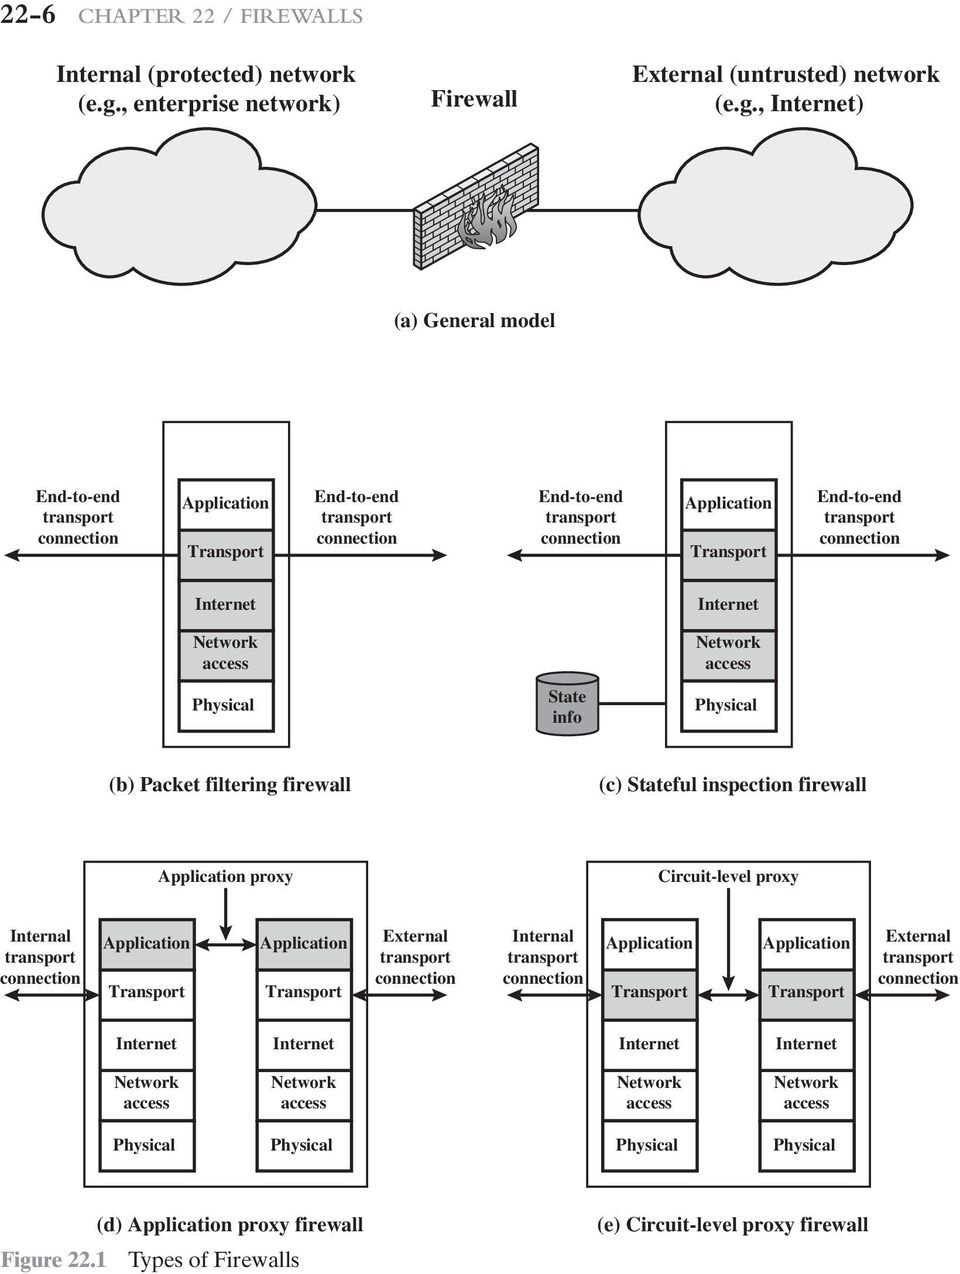 , Internet) (a) General model End-to-end transport connection Application Transport End-to-end transport connection End-to-end transport connection Application Transport End-to-end transport